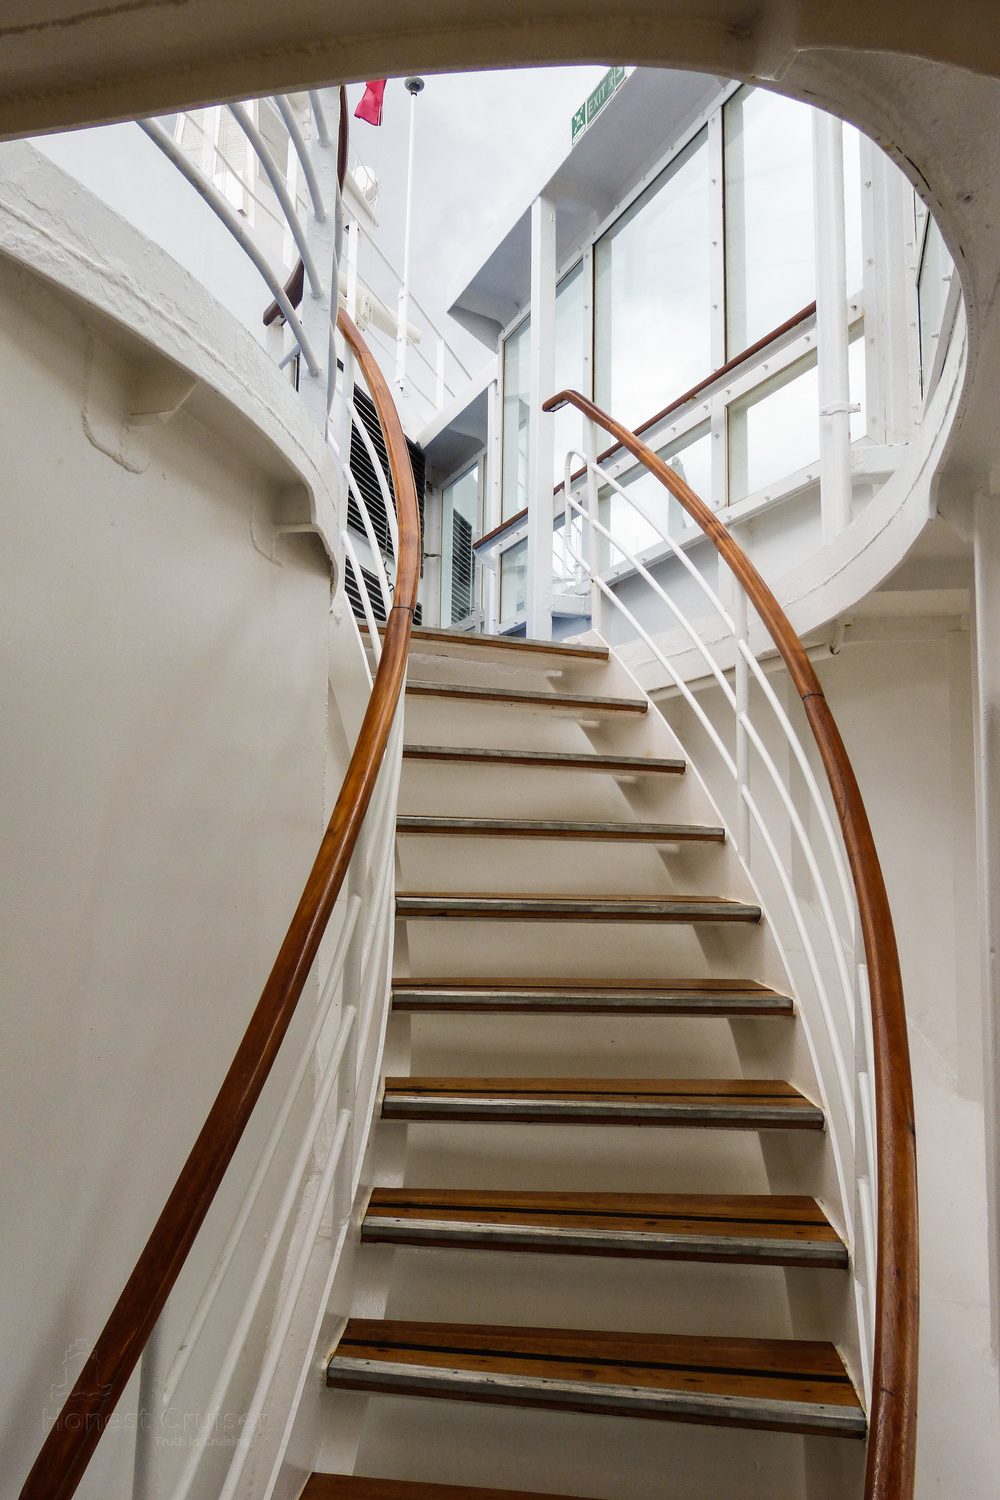 Beautifully curved stairs leading from Marquee deck 9, just aft of The Observatory lounge, leading up Sun deck 10.